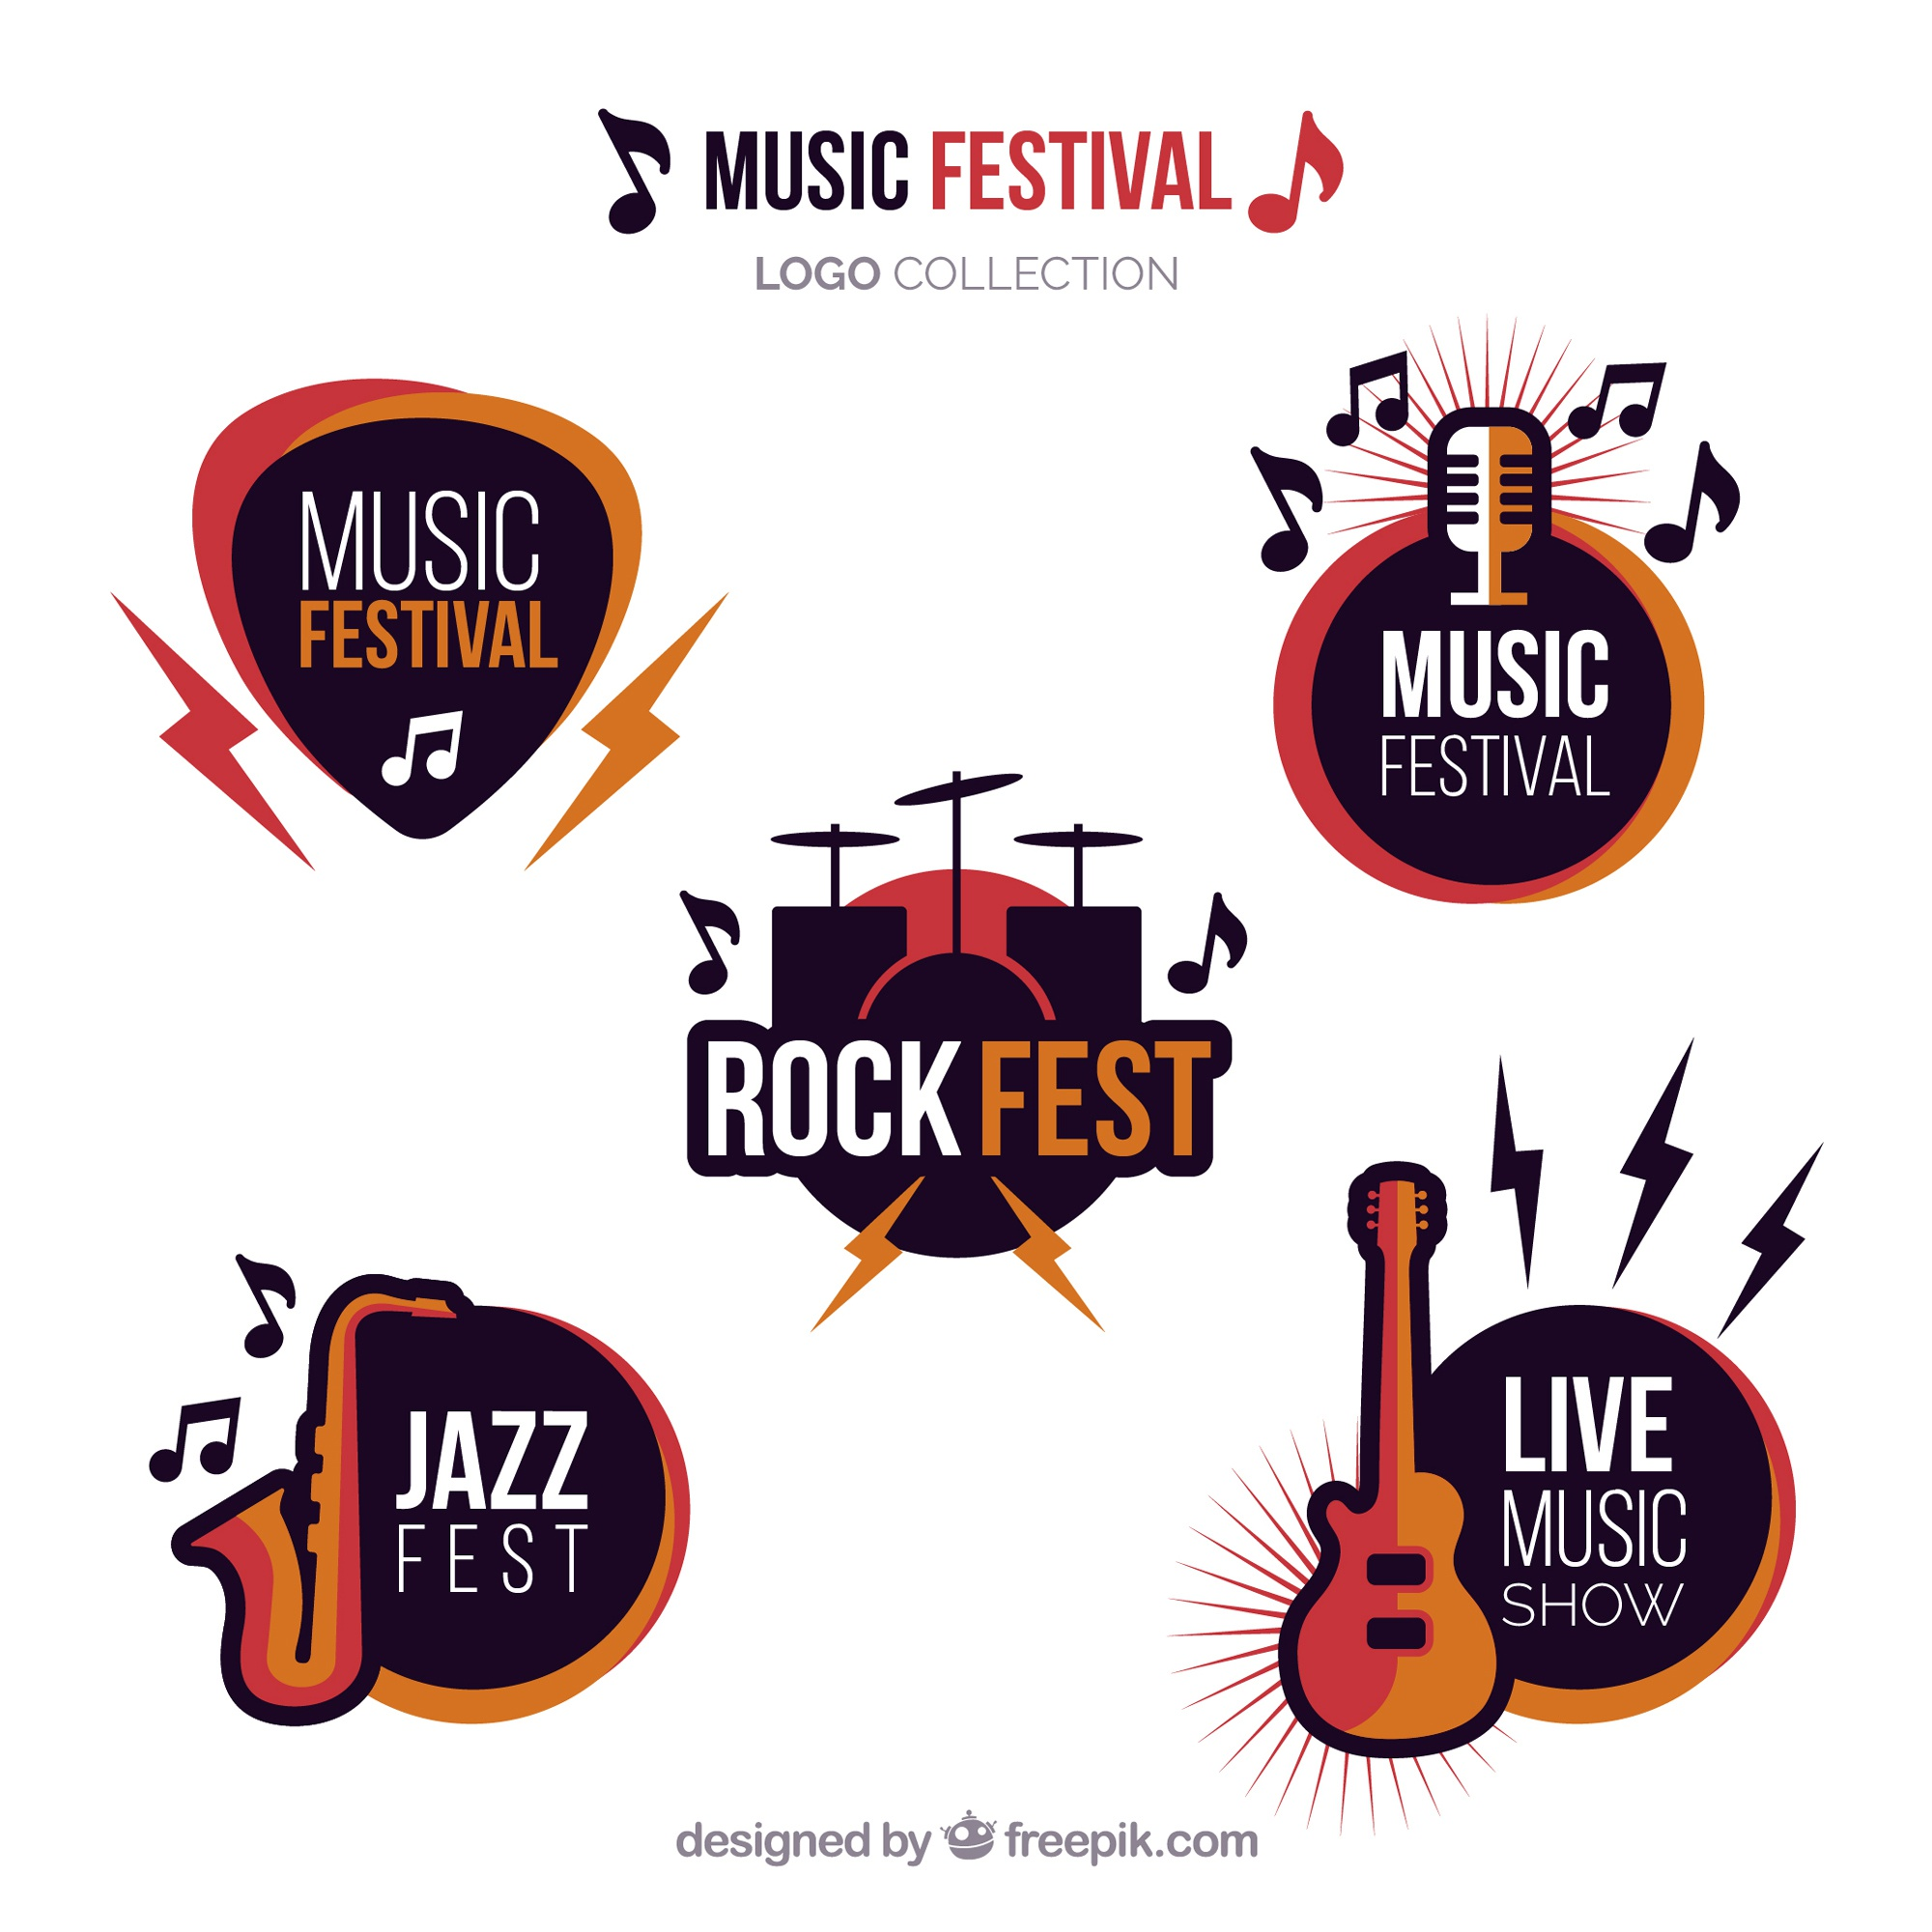 Music festival logo collection with flat design